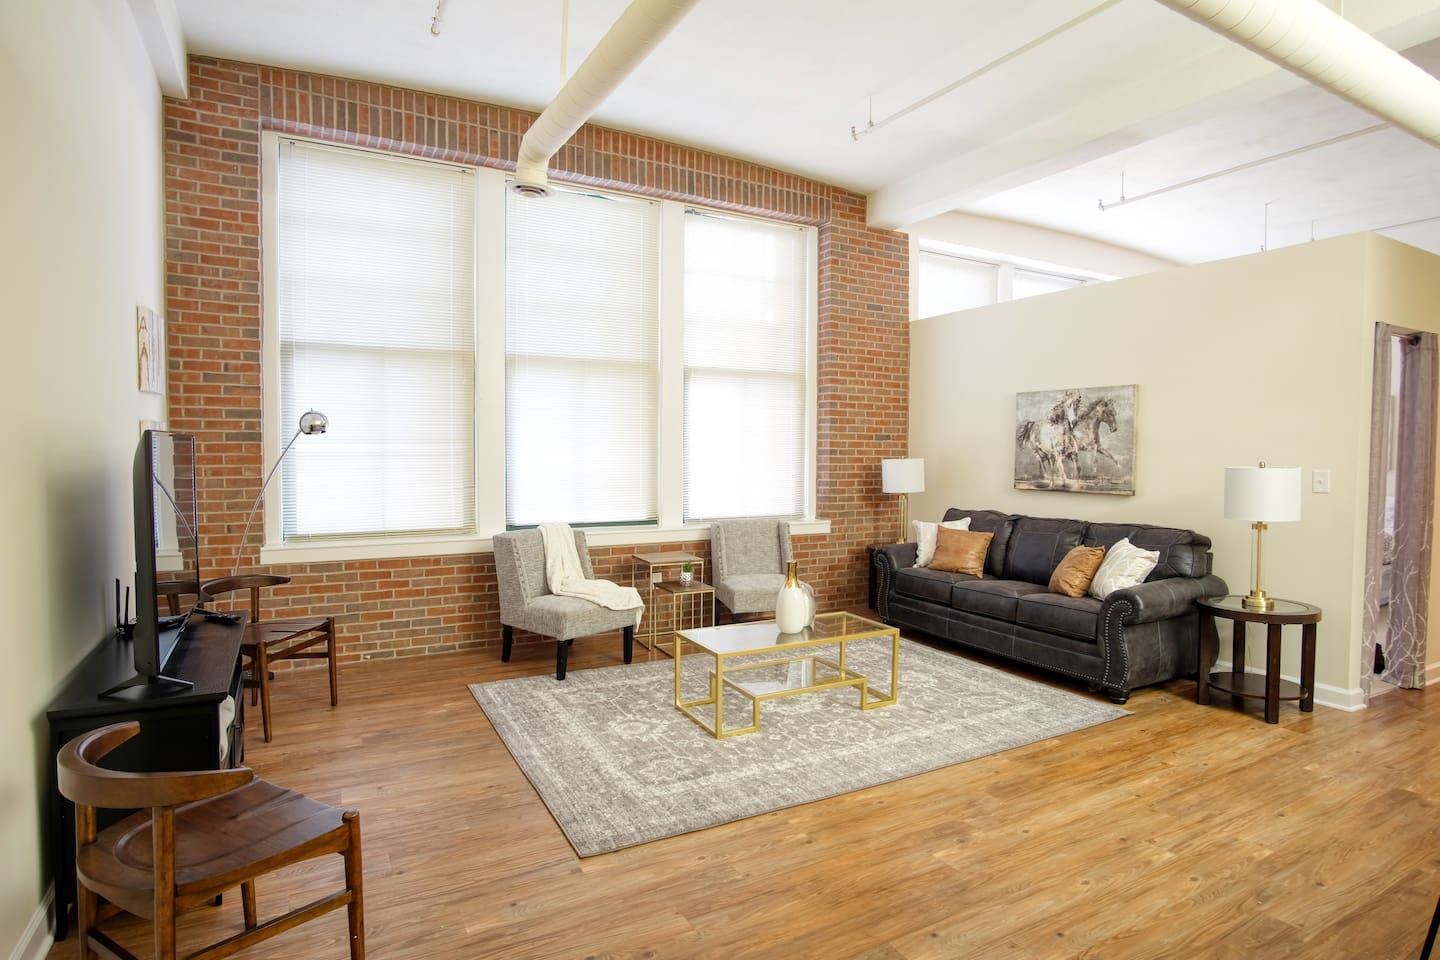 Relax in our spacious open concept space with classic ultra high ceilings, huge windows, and brick wall interior